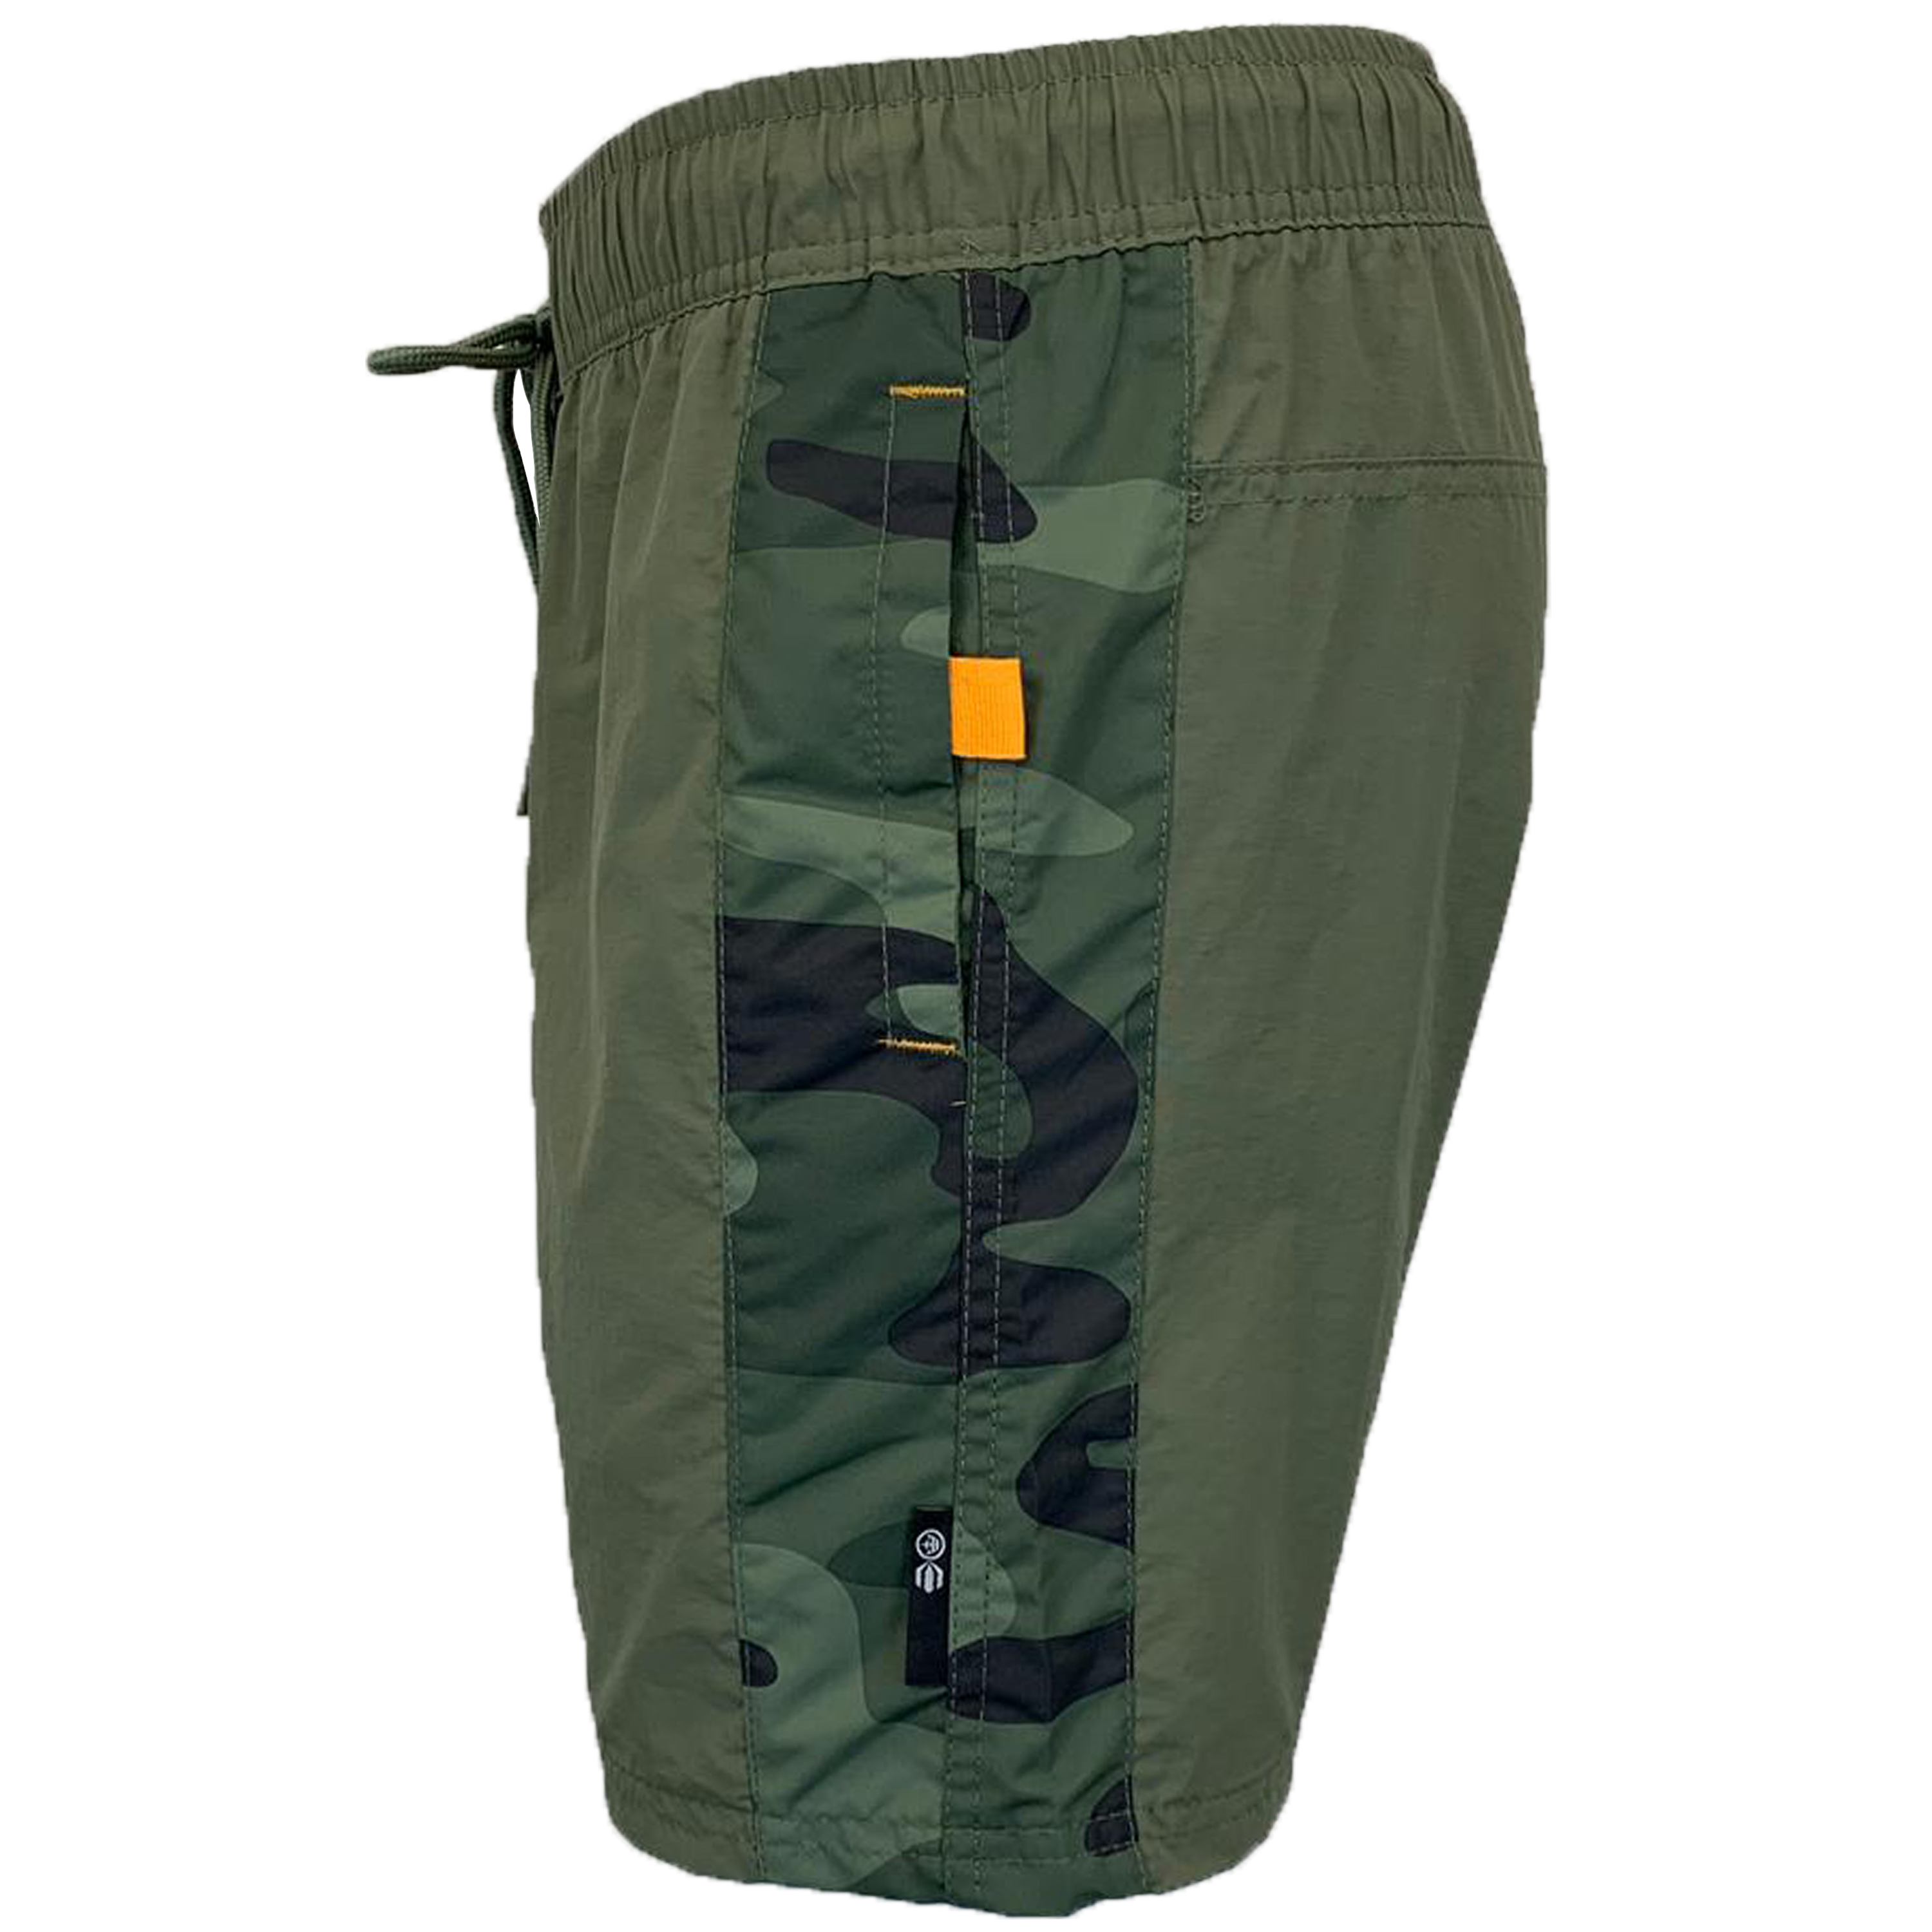 Mens-Camouflage-Swim-Shorts-Crosshatch-Army-Military-Knee-Length-Casual-Summer thumbnail 20